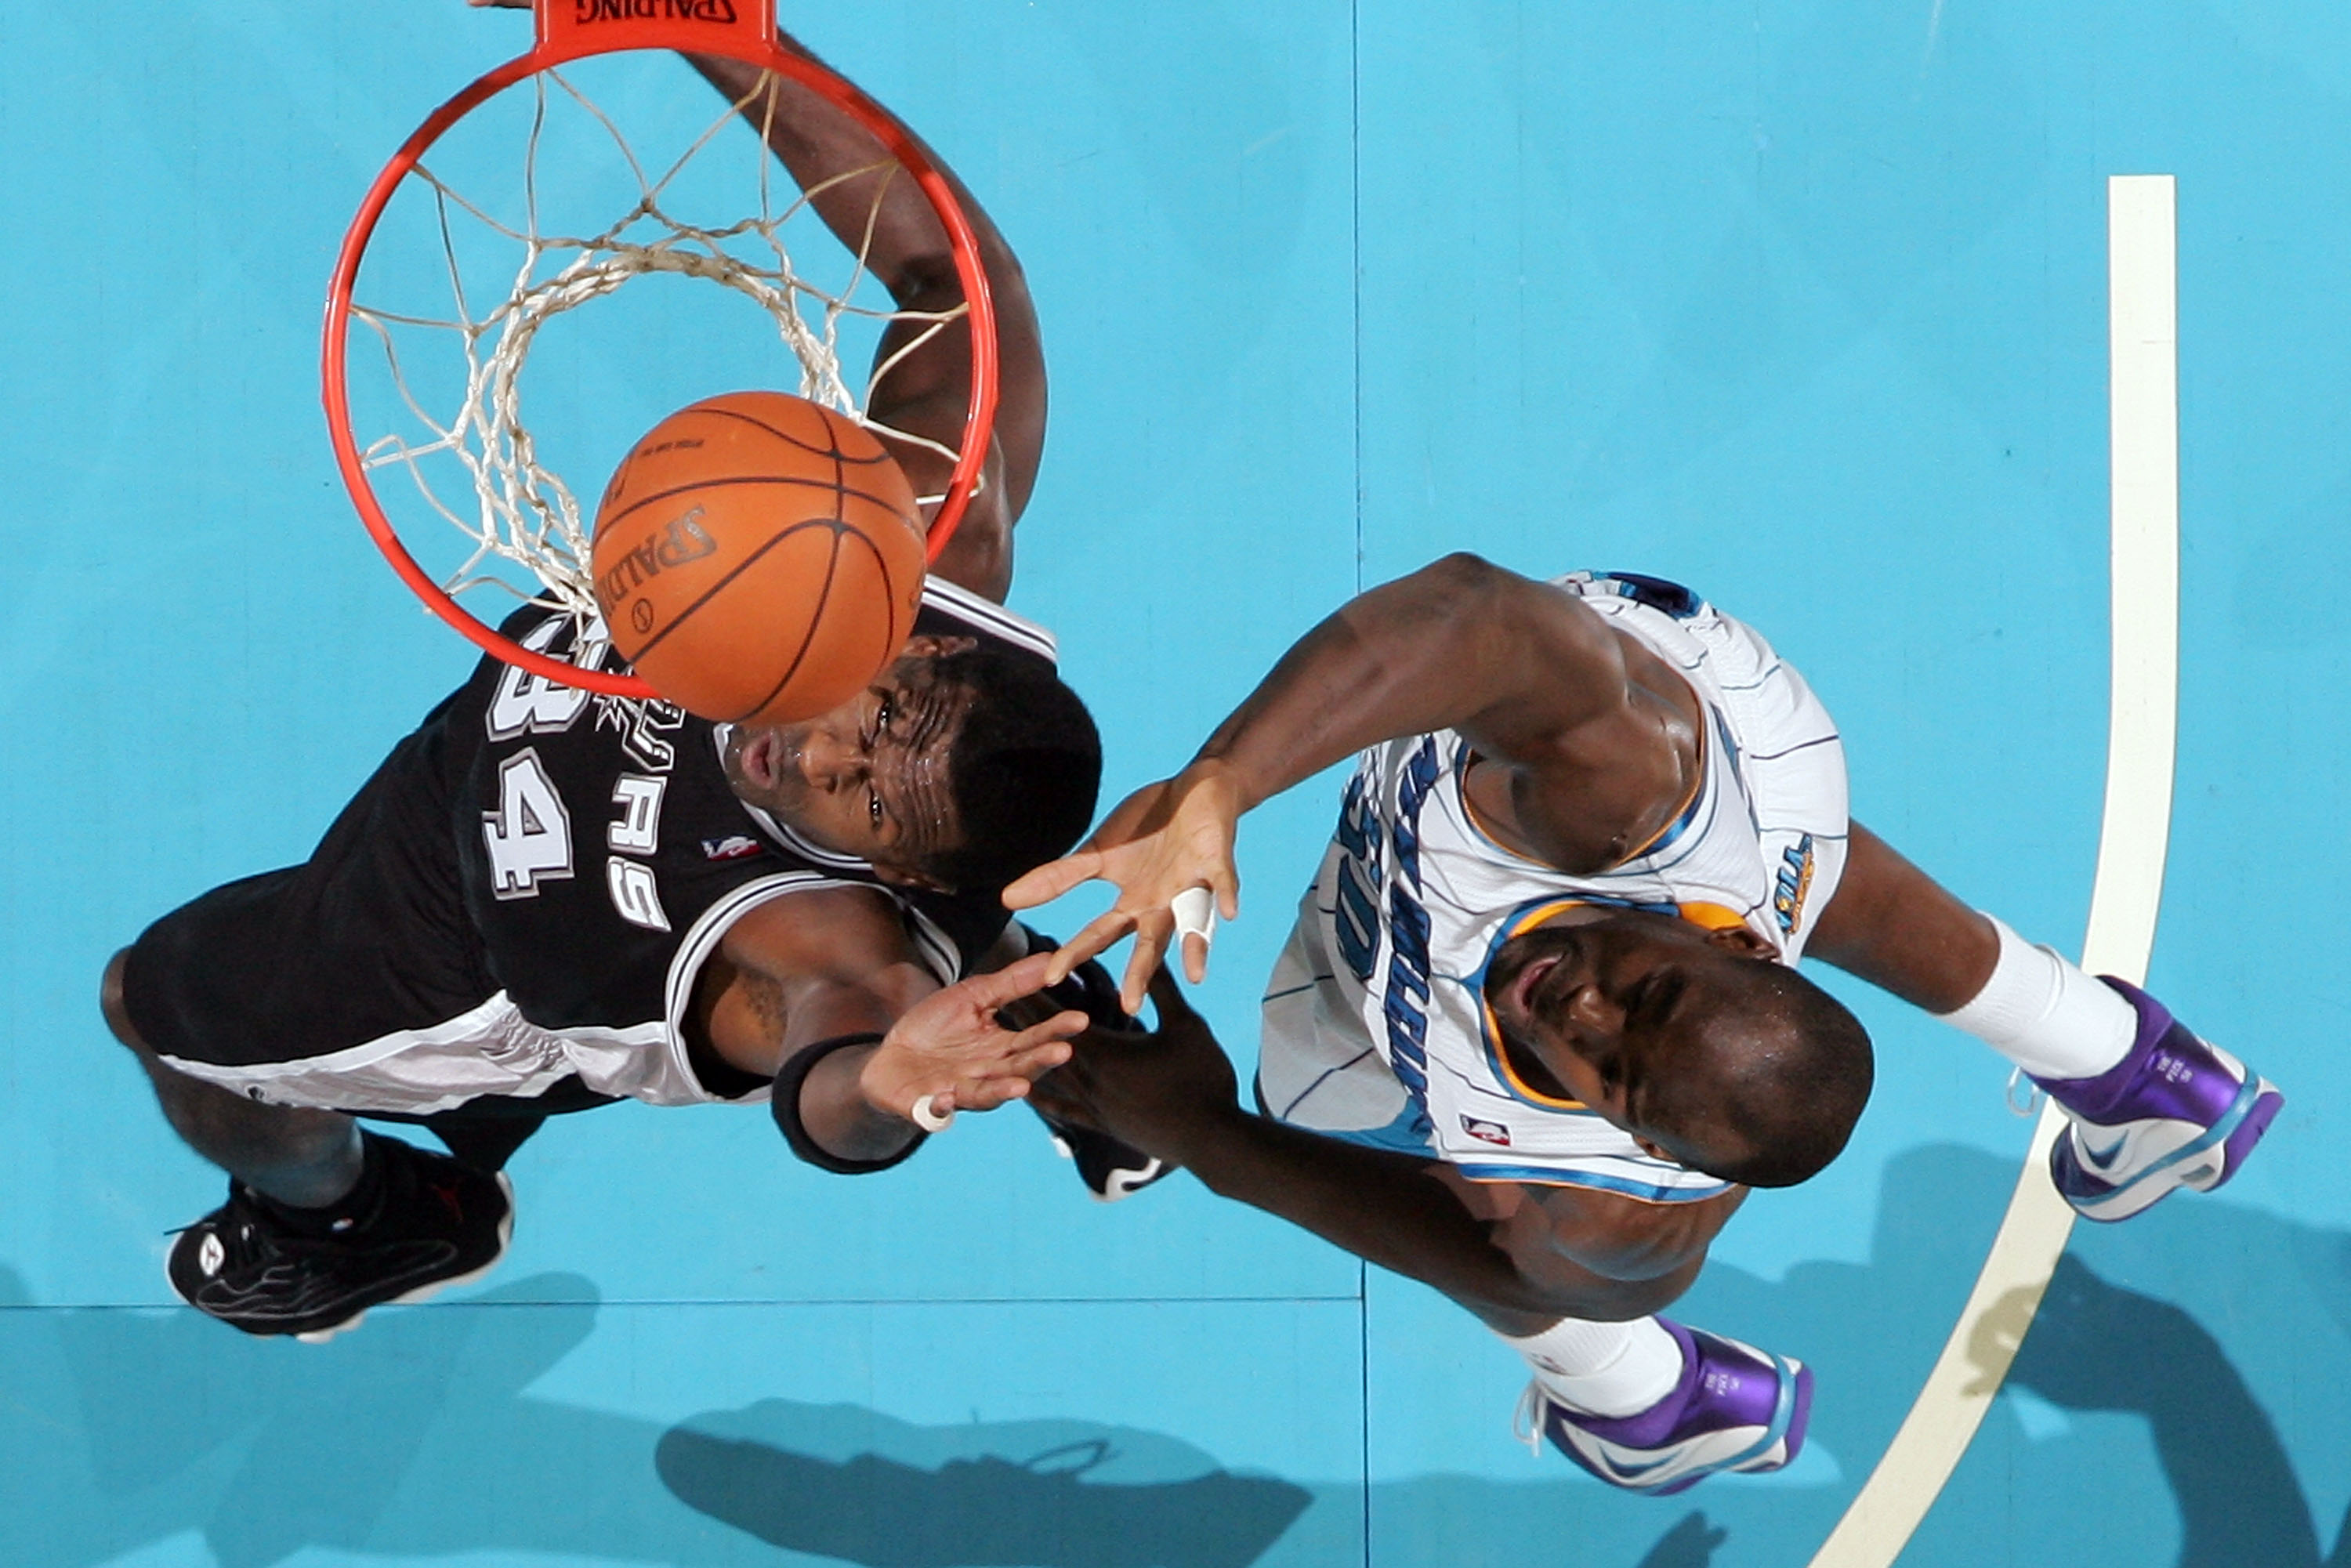 NEW ORLEANS - NOVEMBER 28: Antonio McDyess #34 of the San Antonio Spurs shoots the ball over Emeka Okafor #50 of the New Orleans Hornets at the New Orleans Arena on November 28, 2010 in New Orleans, Louisiana.  The Spurs defeated the Hornets 109-95.  NOTE